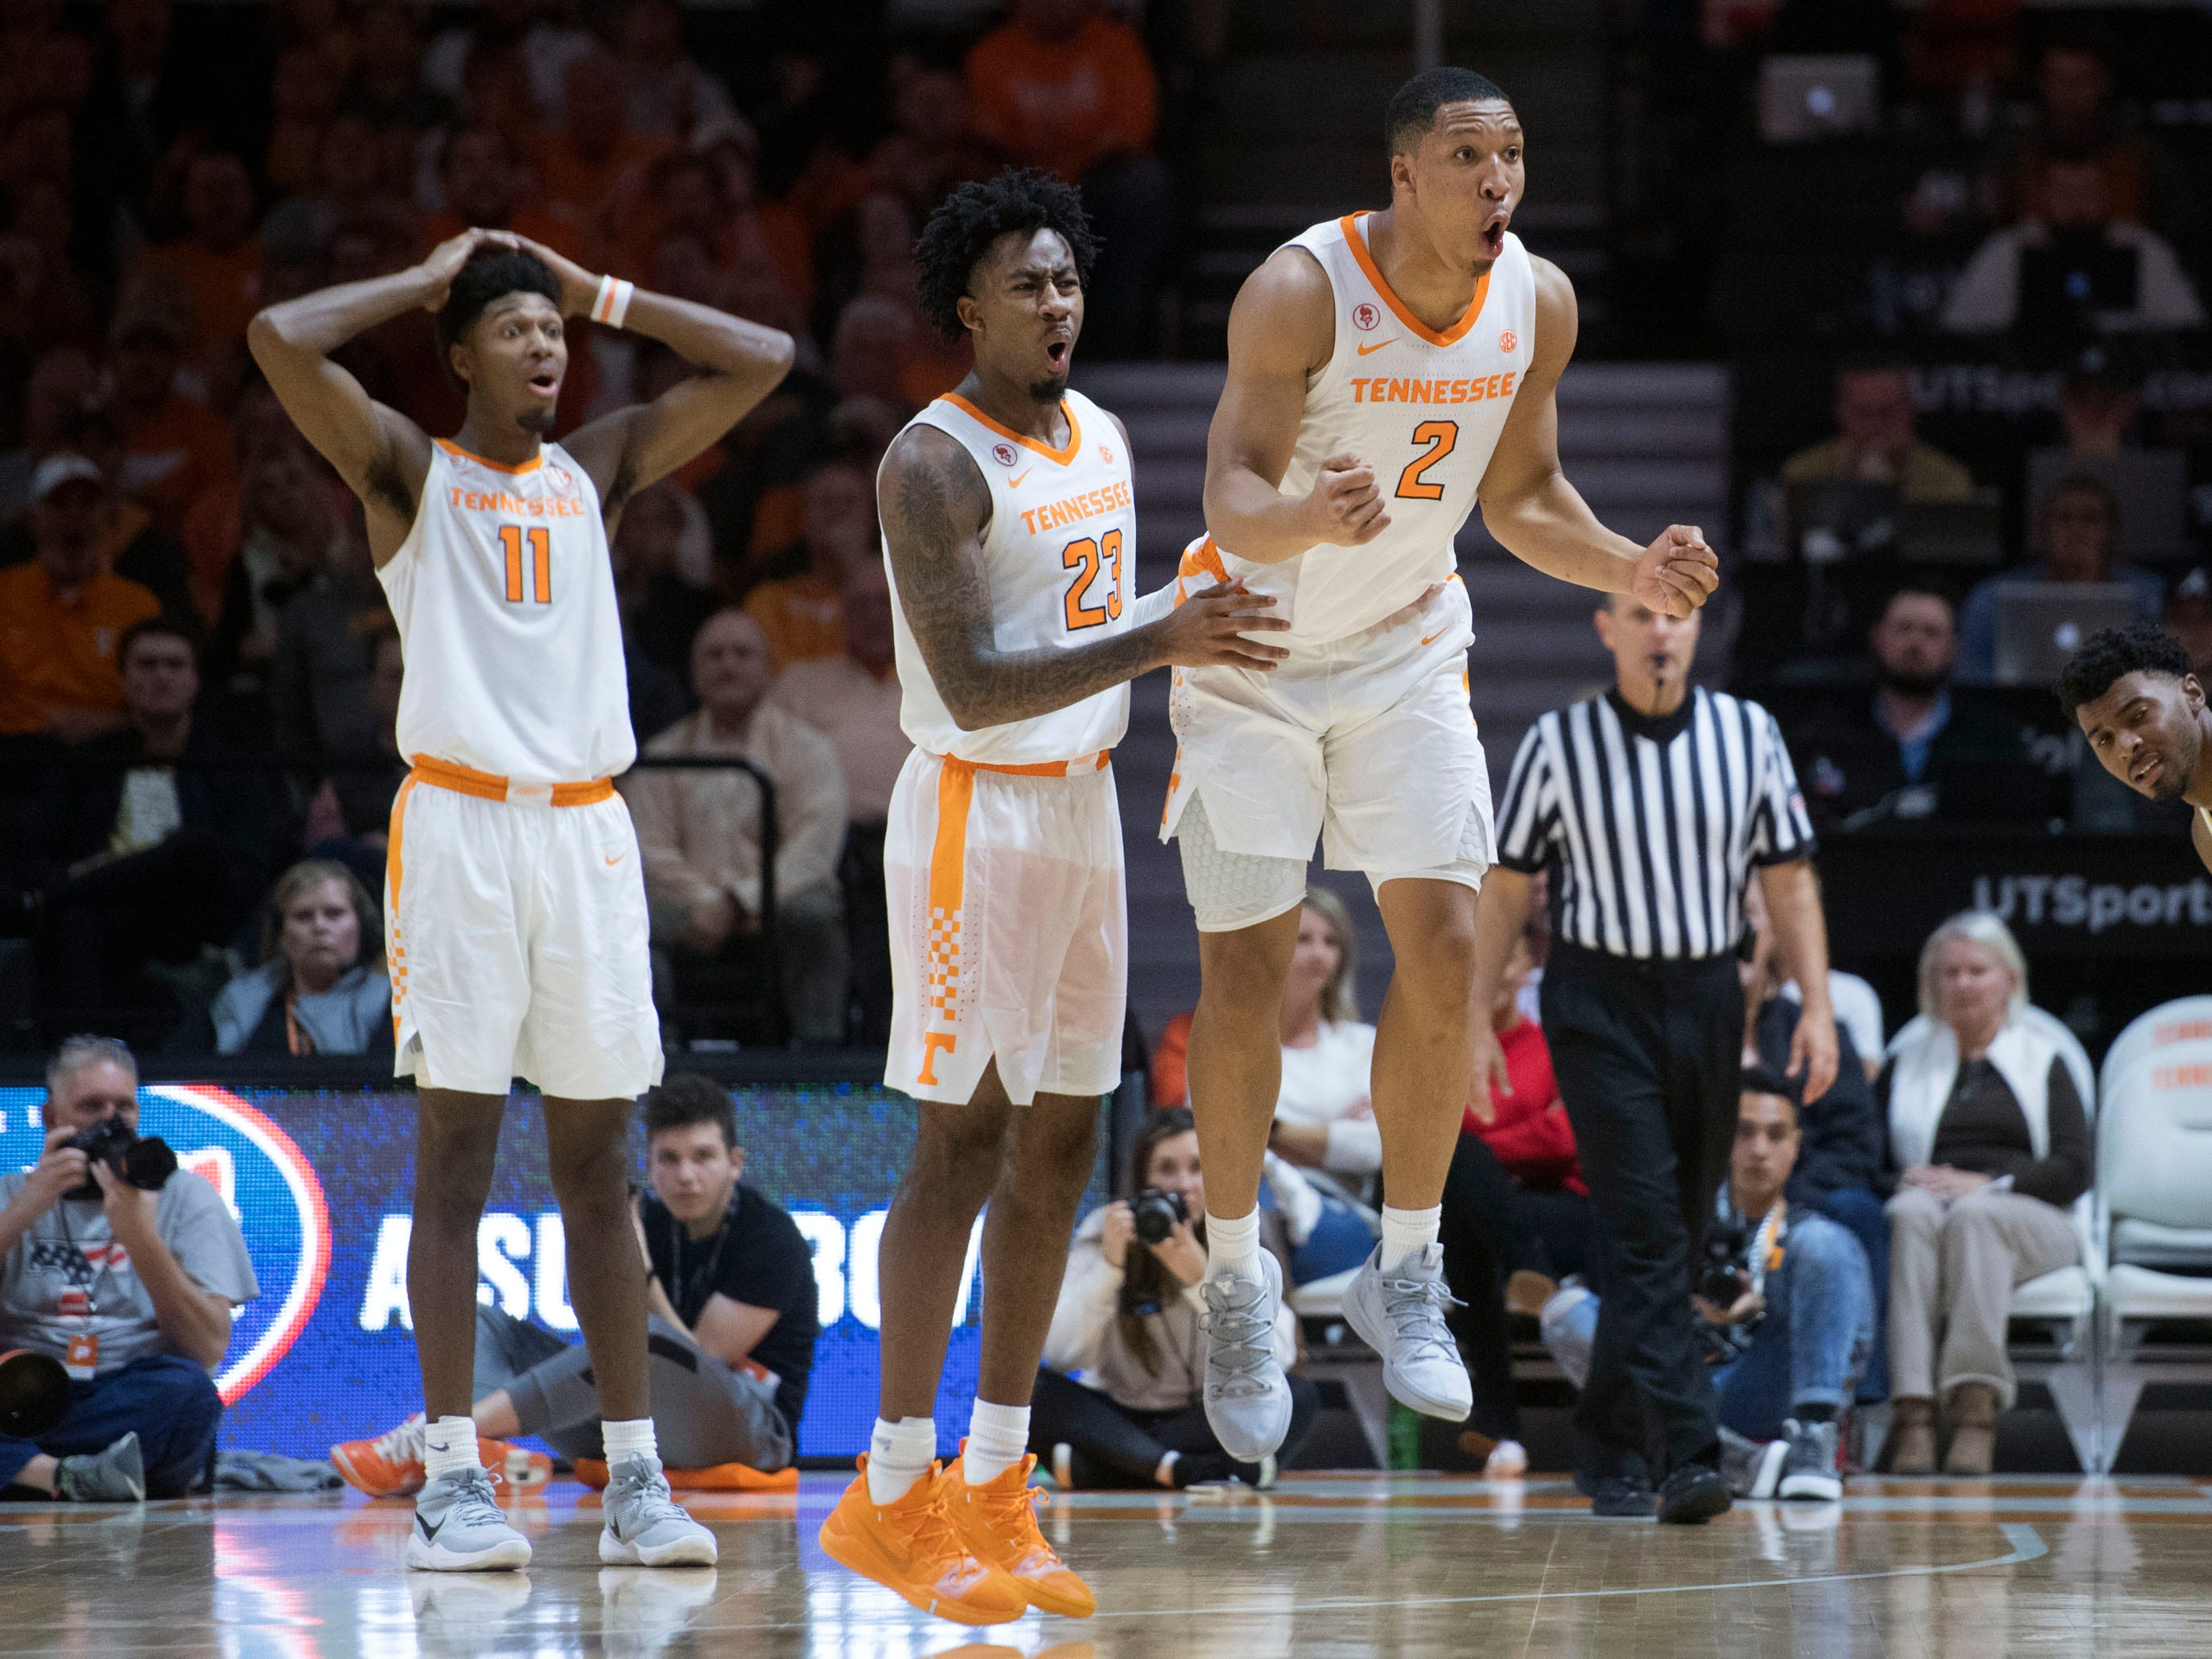 From right, Tennessee's Grant Williams (2), Jordan Bowden (23), and Kyle Alexander (11) react to a foul call against Williams during the game against Georgia Tech on Wednesday, November 14, 2018.